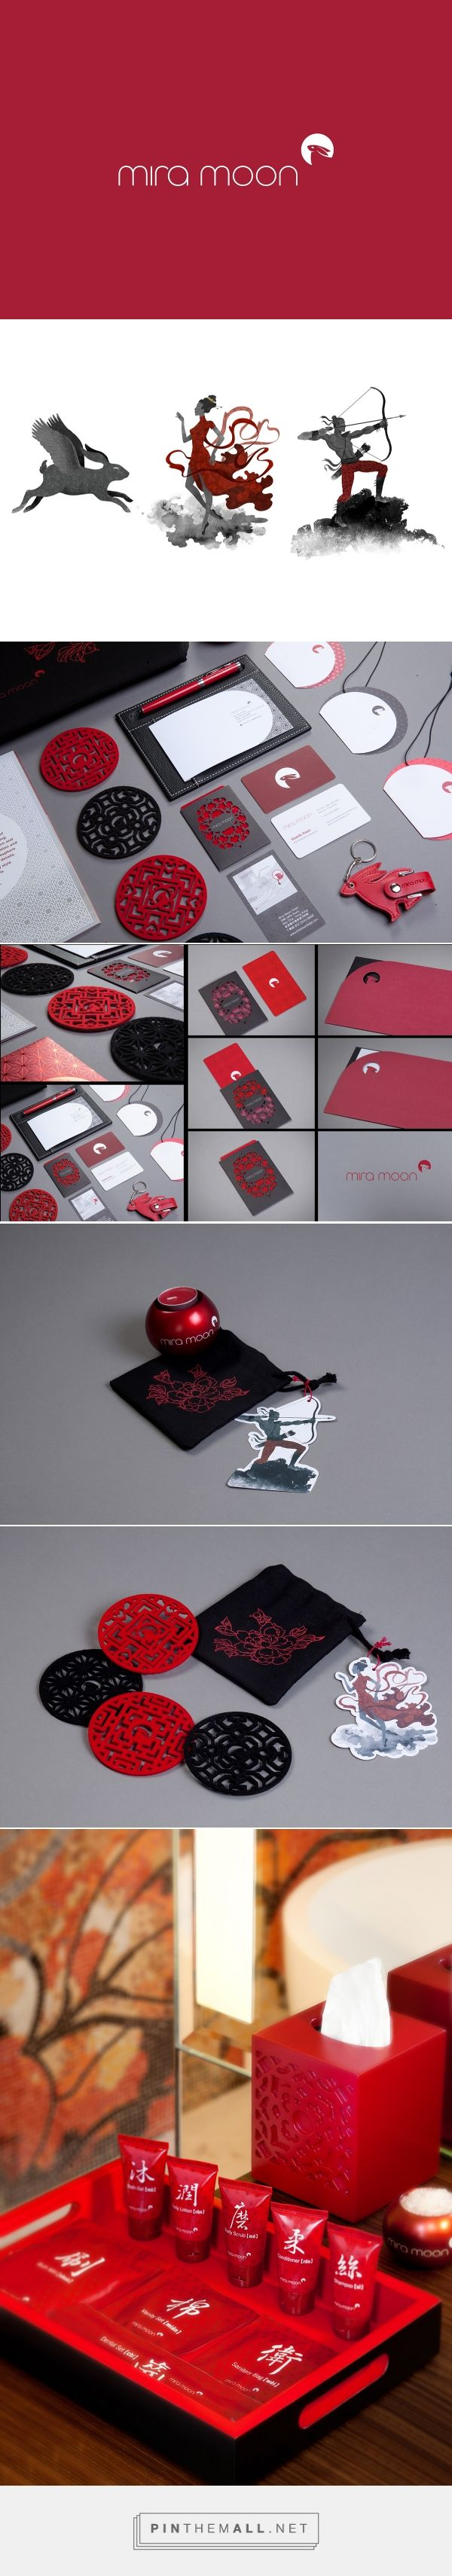 Mira Moon Hotel Branding collaterals, amenities, packaging on Behance by Alex Lau curated by Packaging Diva PD. Drawing inspiration from the Moon Festival fairytale that tugs at the public's heartstrings, Jade Rabbit and the moon are the key elements for Mira Moon's style-savvy brand identity.